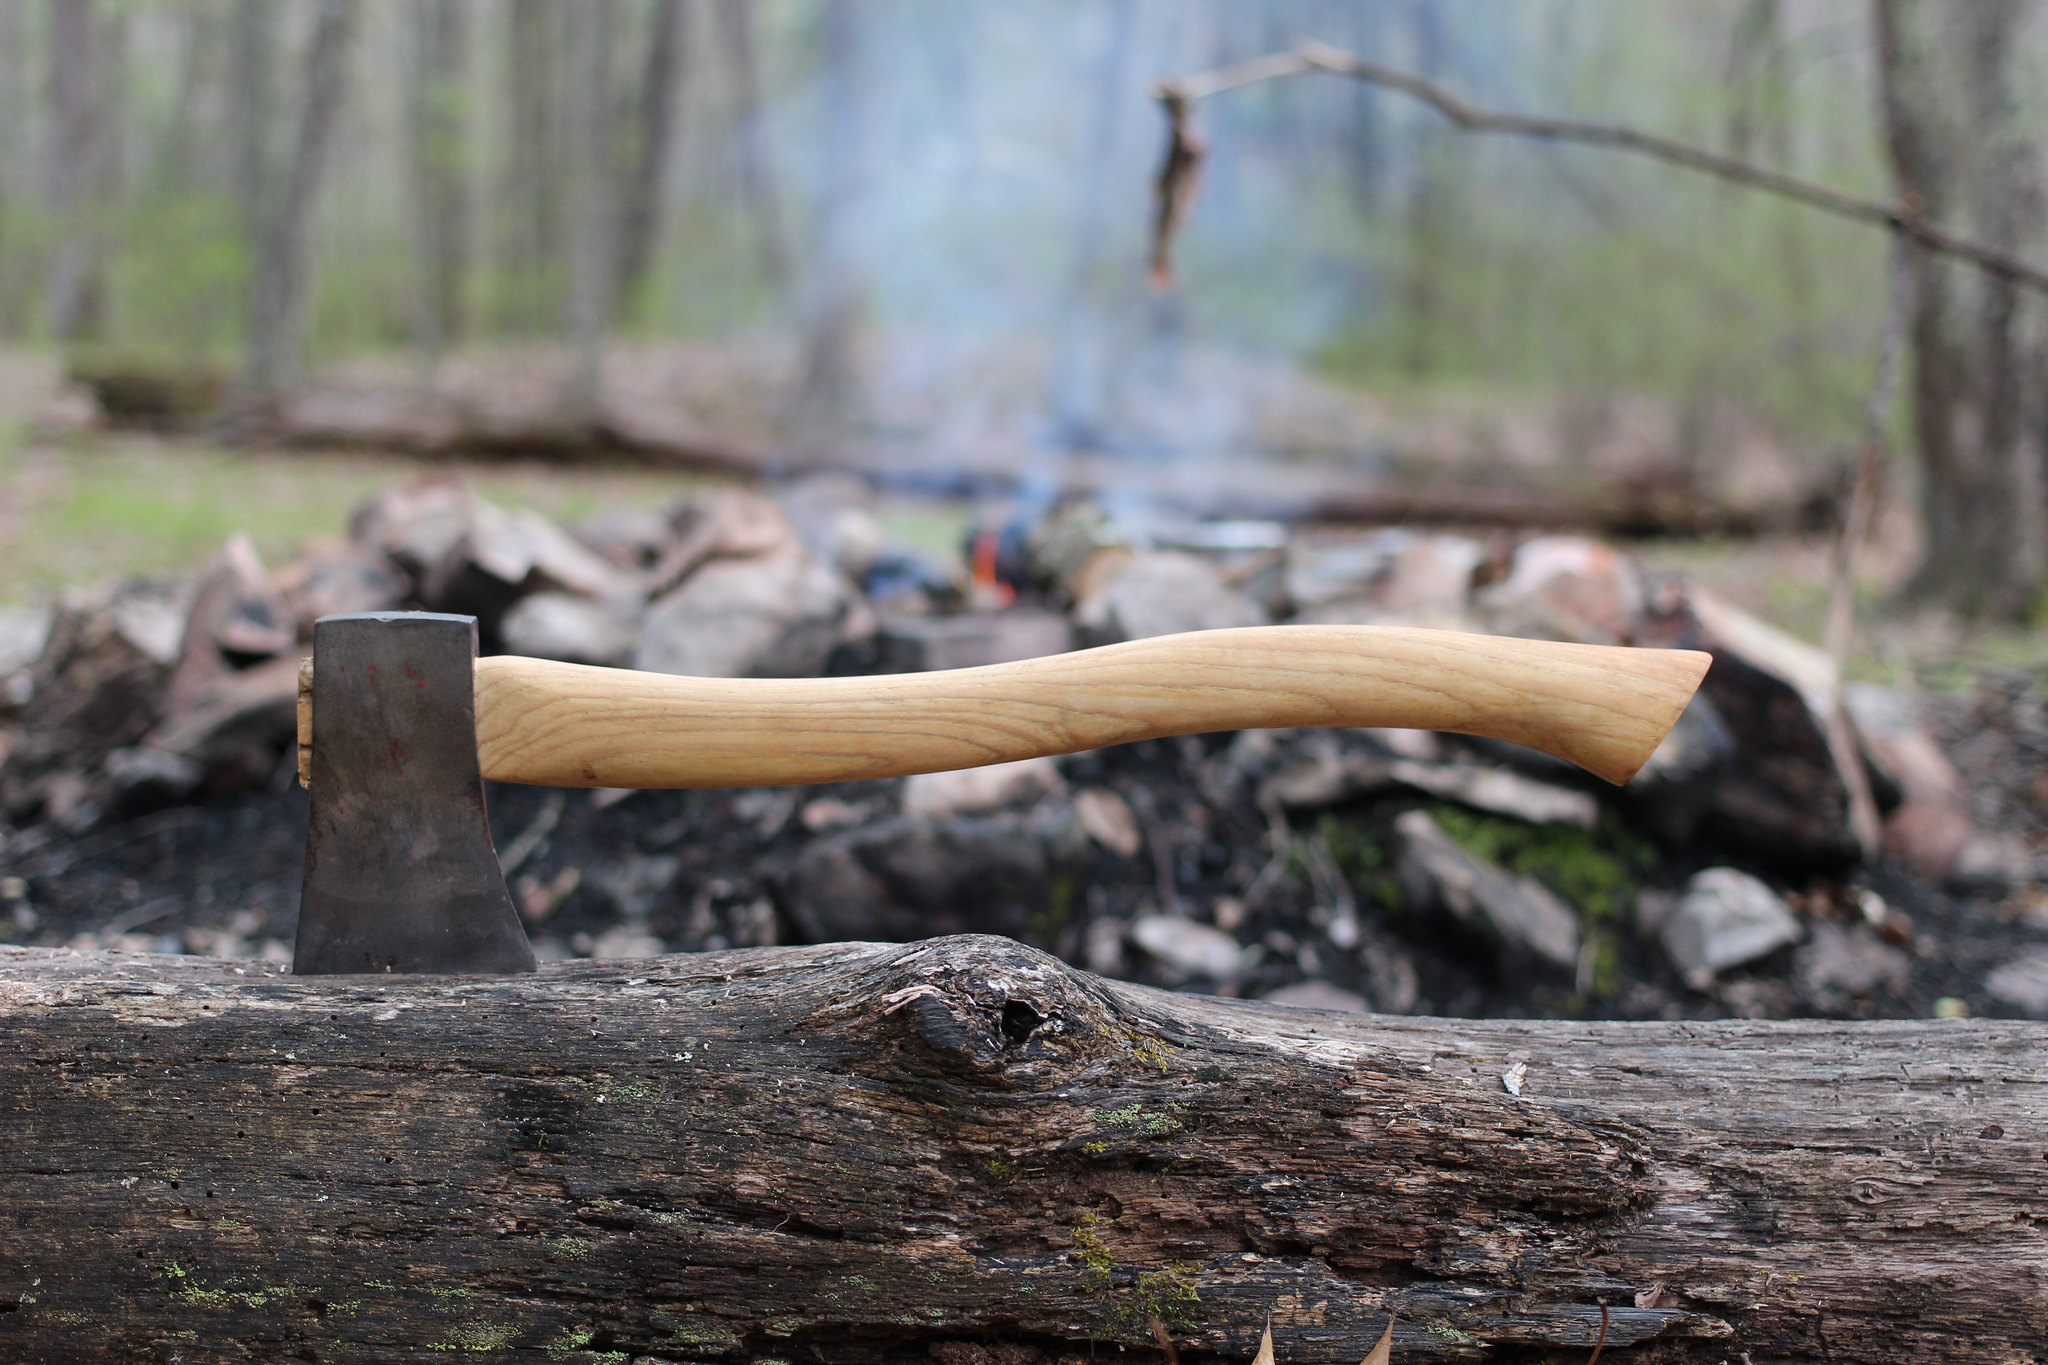 If you could own only one ax, what would it be? | Bushcraft